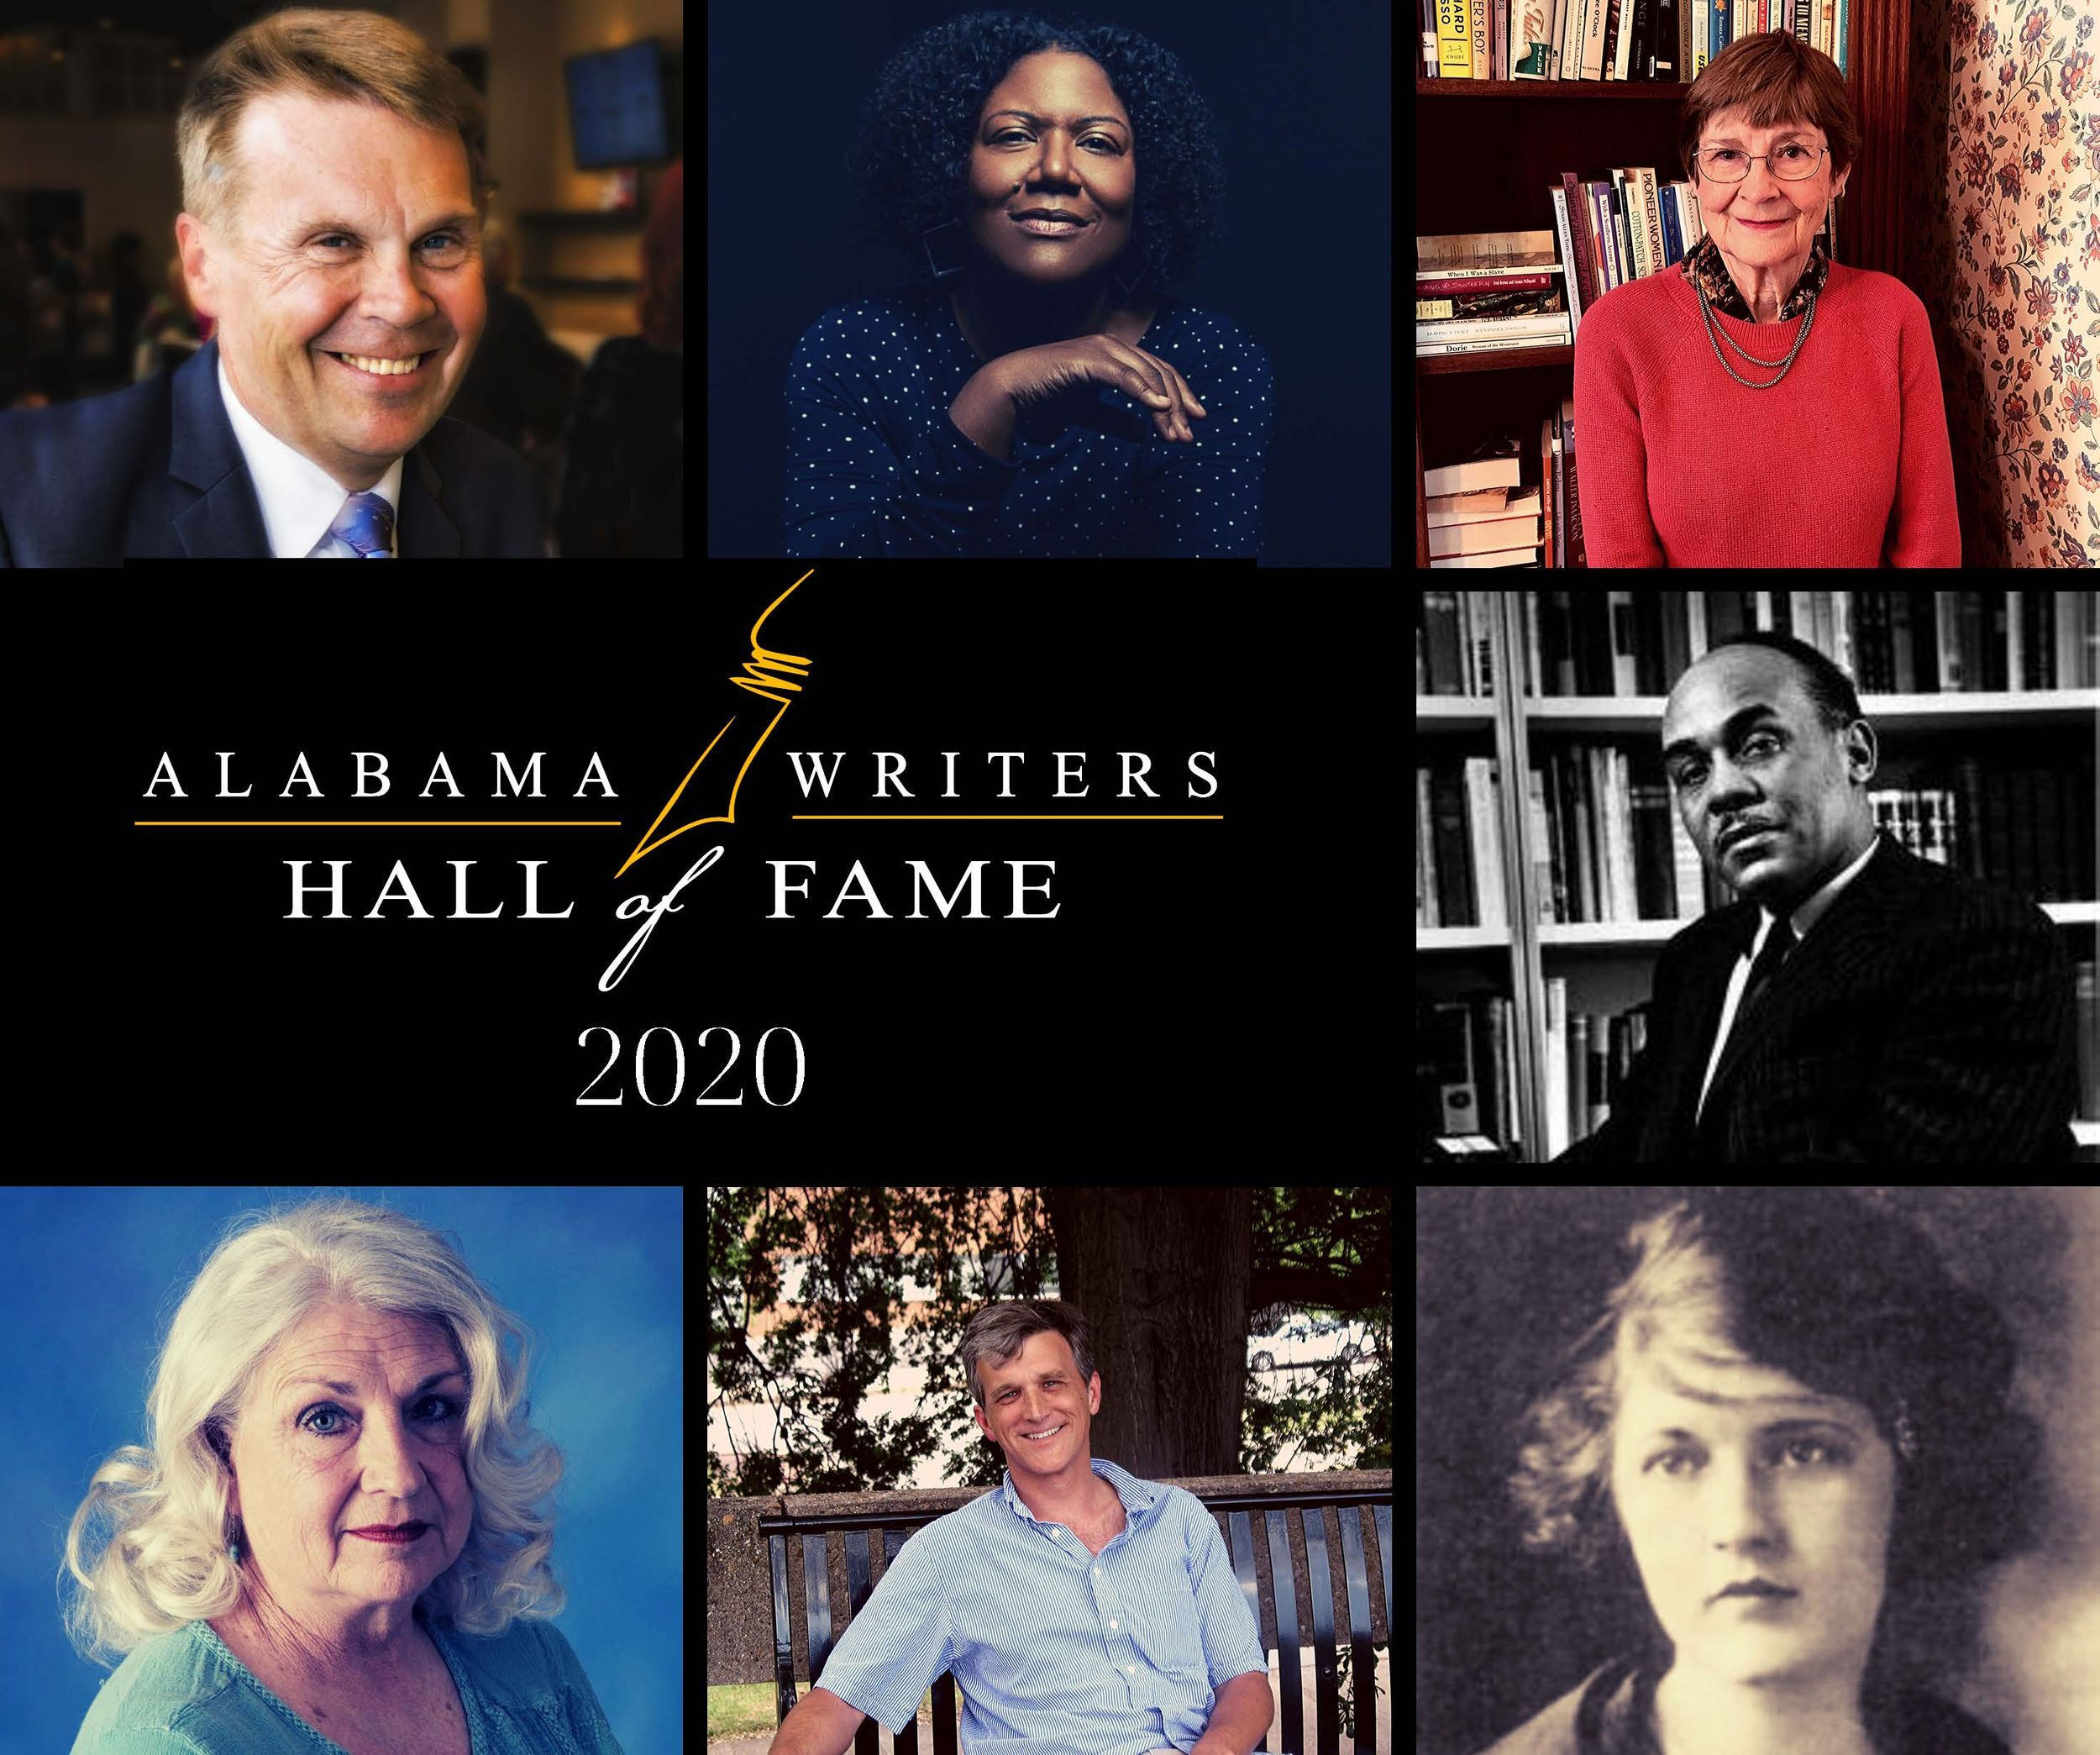 Alabama Writers Hall of Fame to Induct 7 in 2020